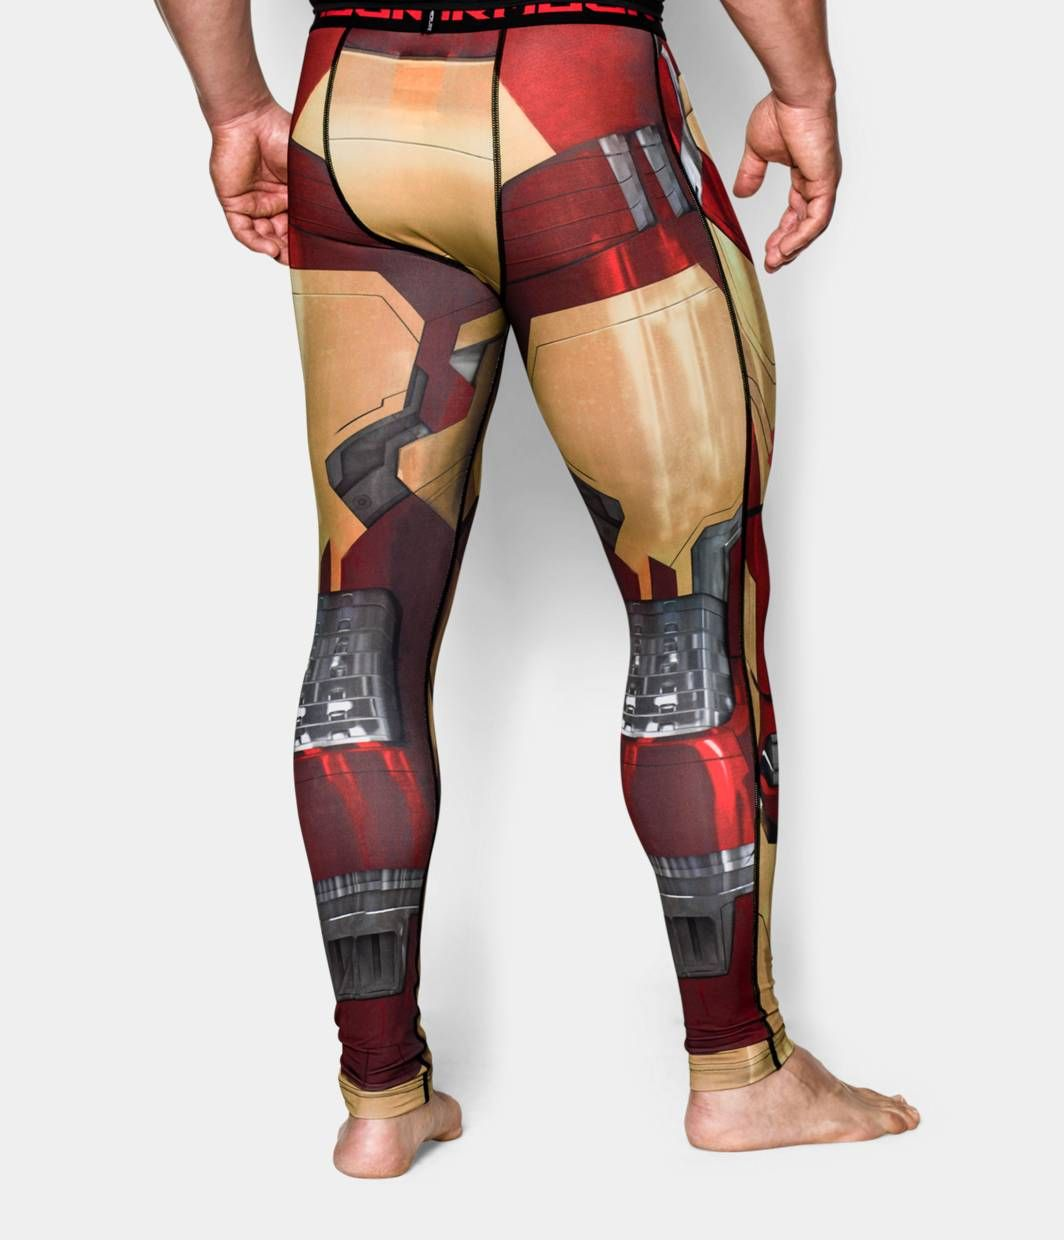 a7ccdb4b02ad9a Men's Under Armour® Alter Ego Iron Man Compression Leggings | Under Armour  US